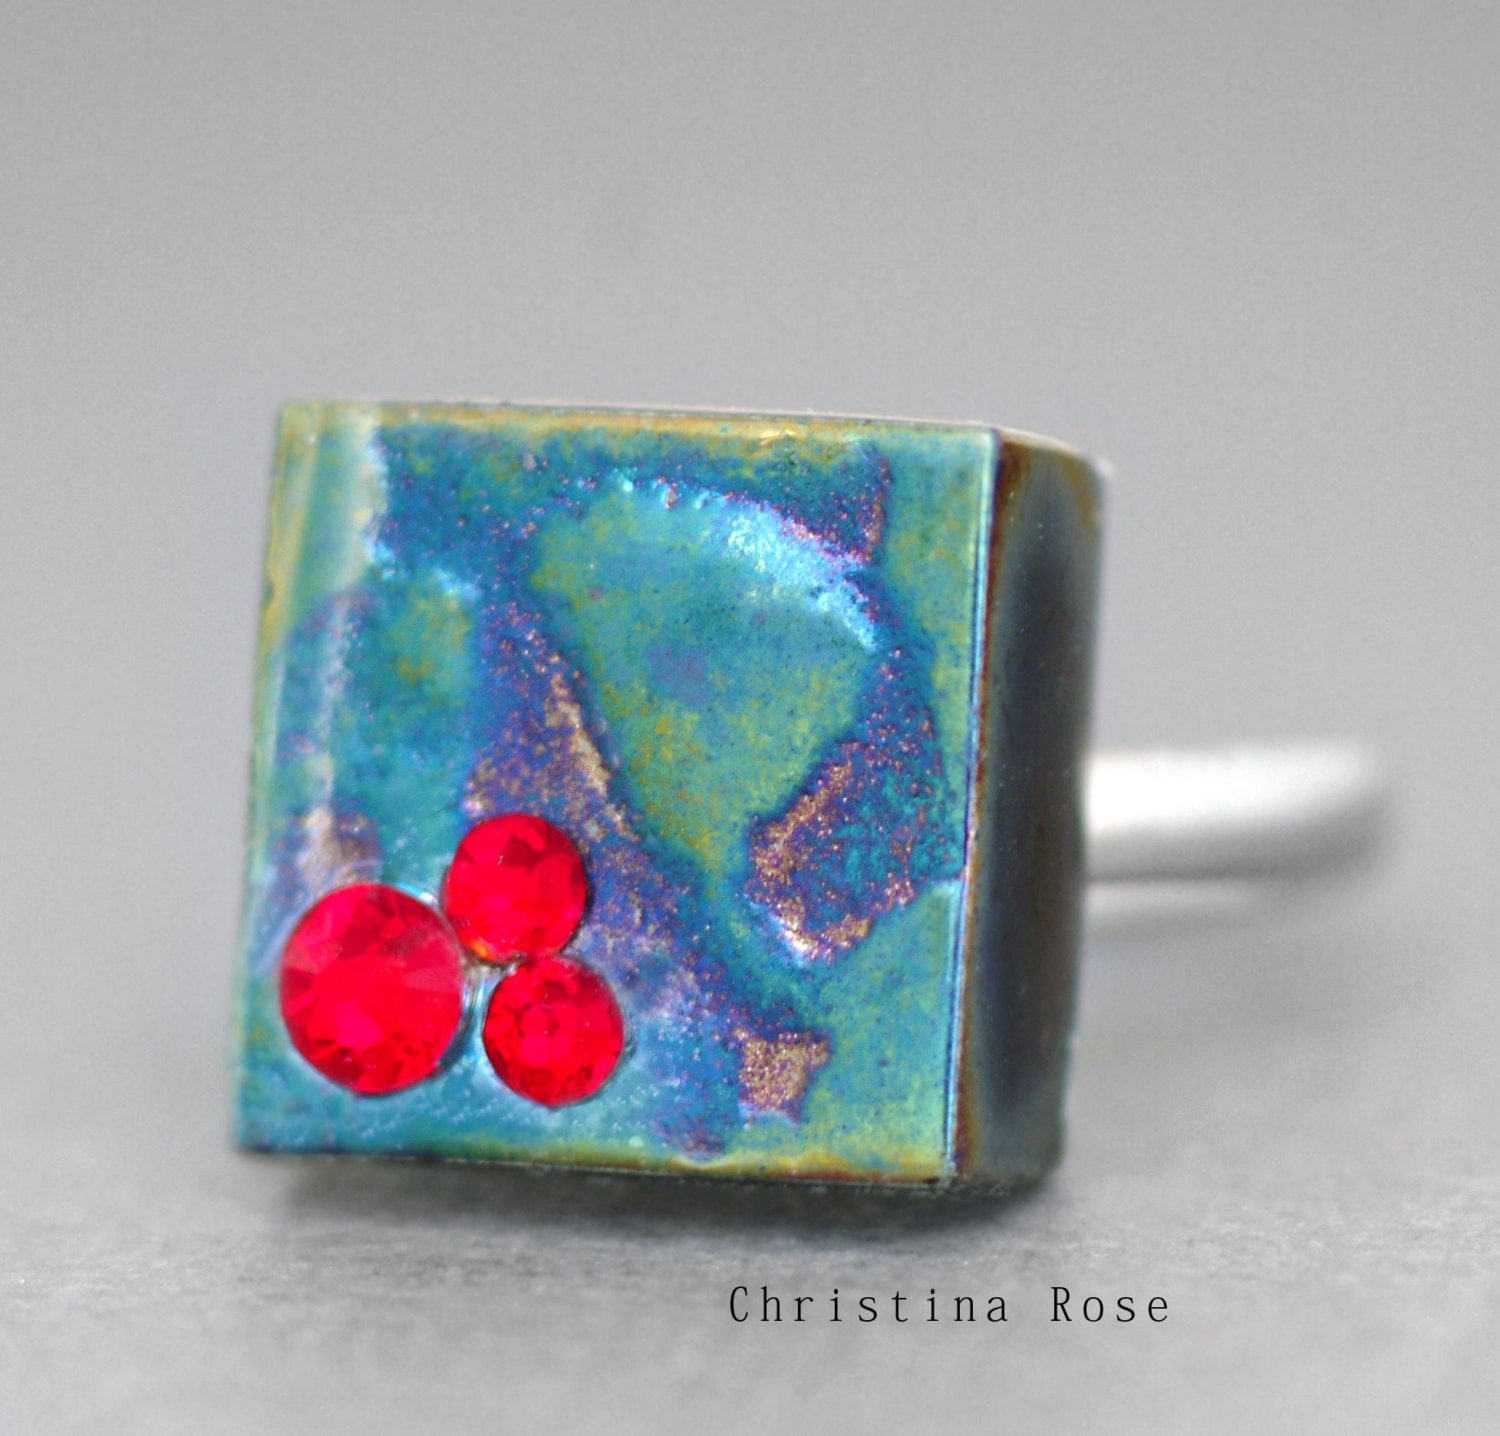 Titanium Metallic Cube Fire Turquoise, Rocket Red & Plum On Silver Band Adjustable 5-9 OOAK no5 - ChristinaRoseJewelry